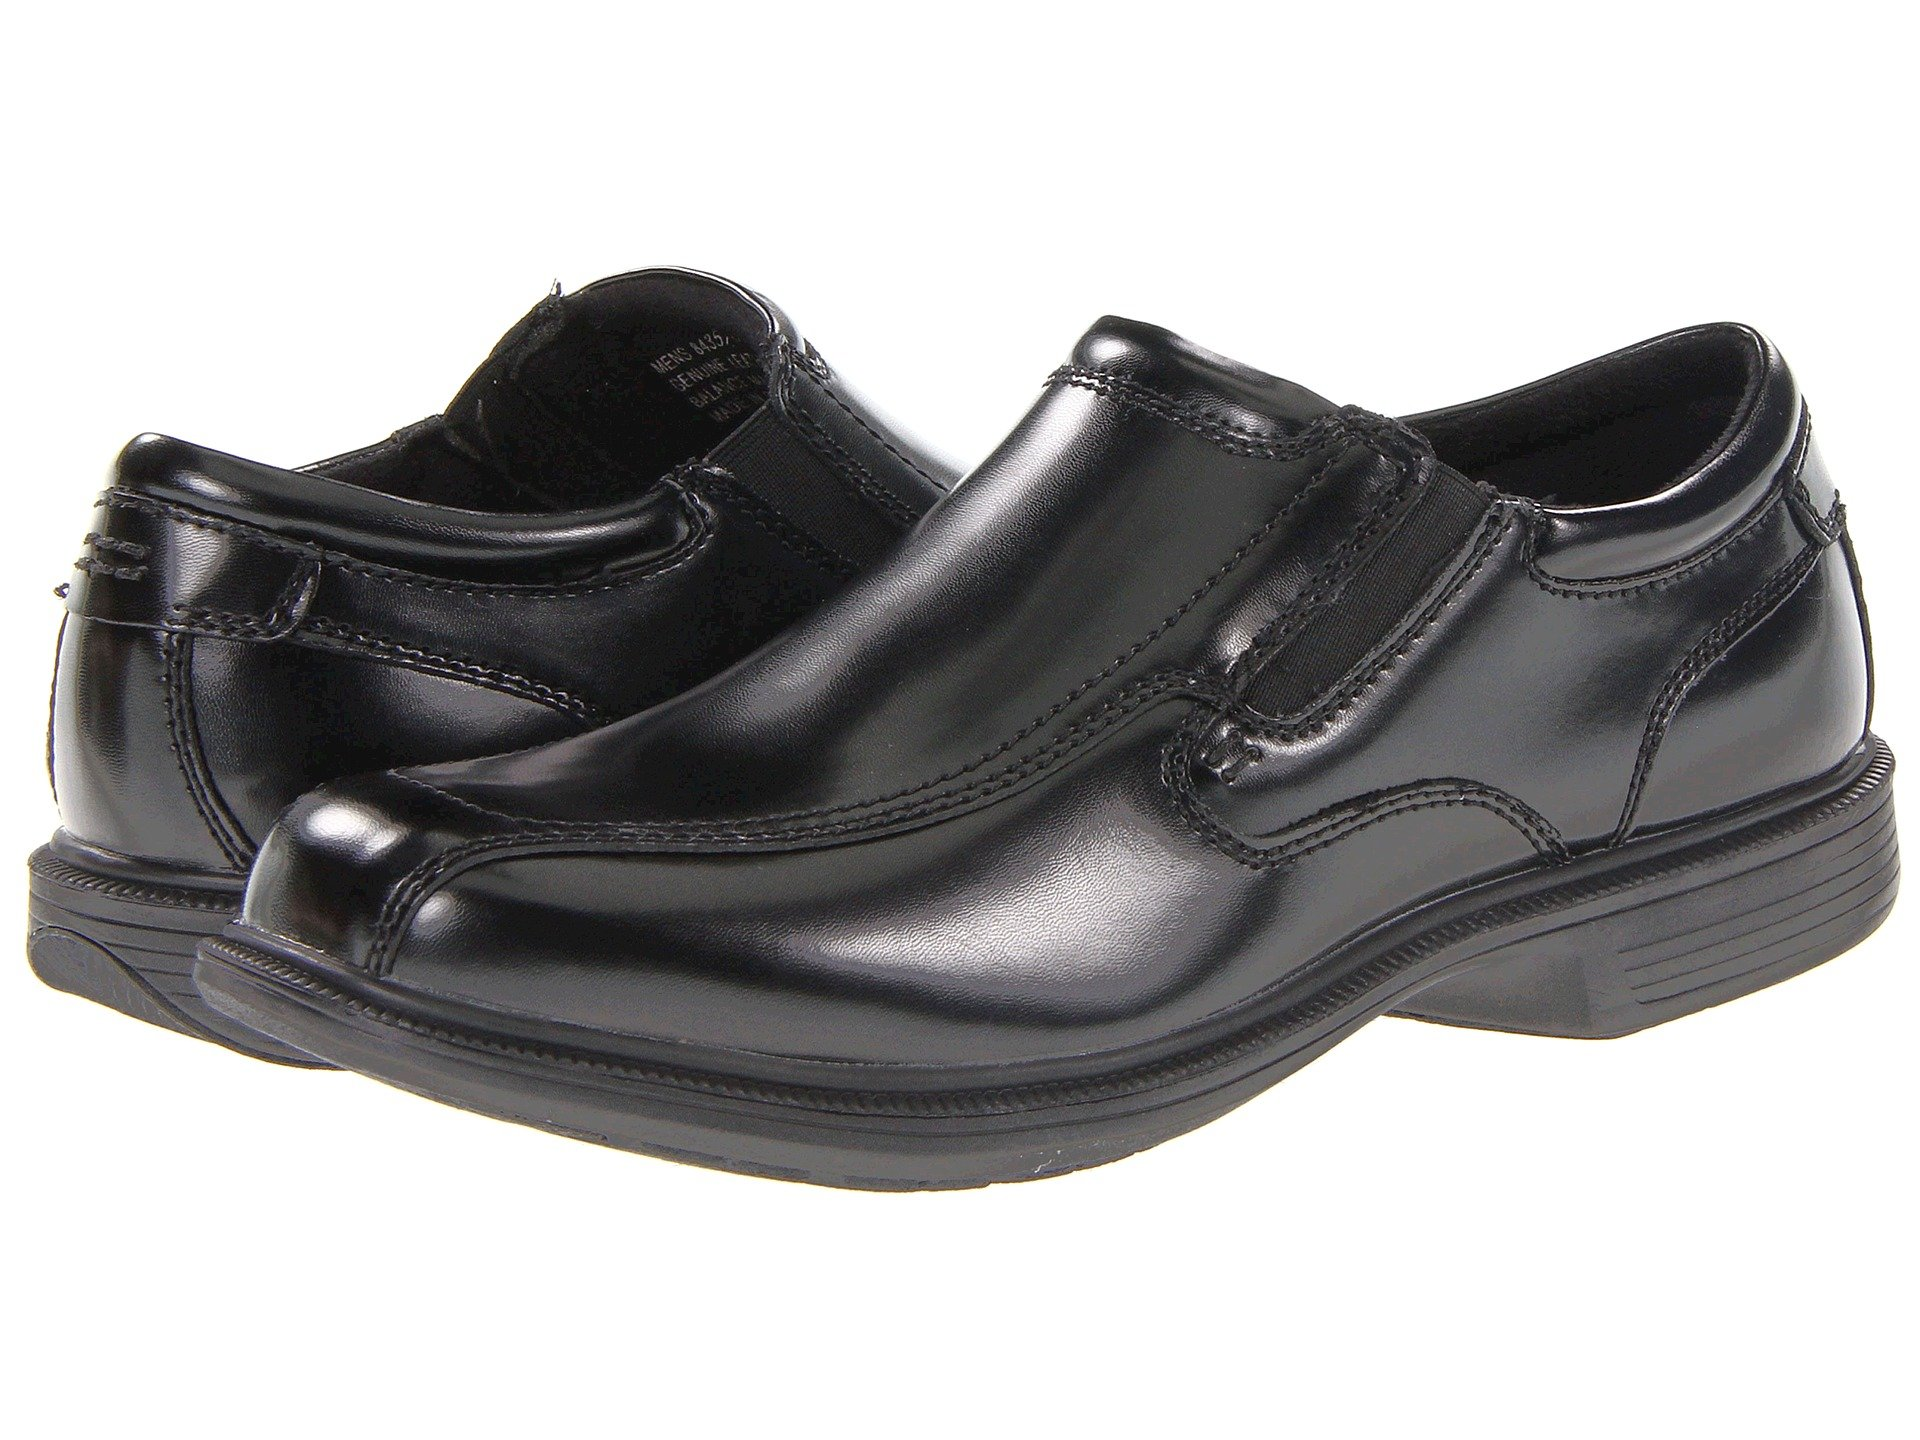 Bleeker Street Bicycle Toe Slip-On with KORE Slip Resistant Walking Comfort  Technology. Nunn Bush